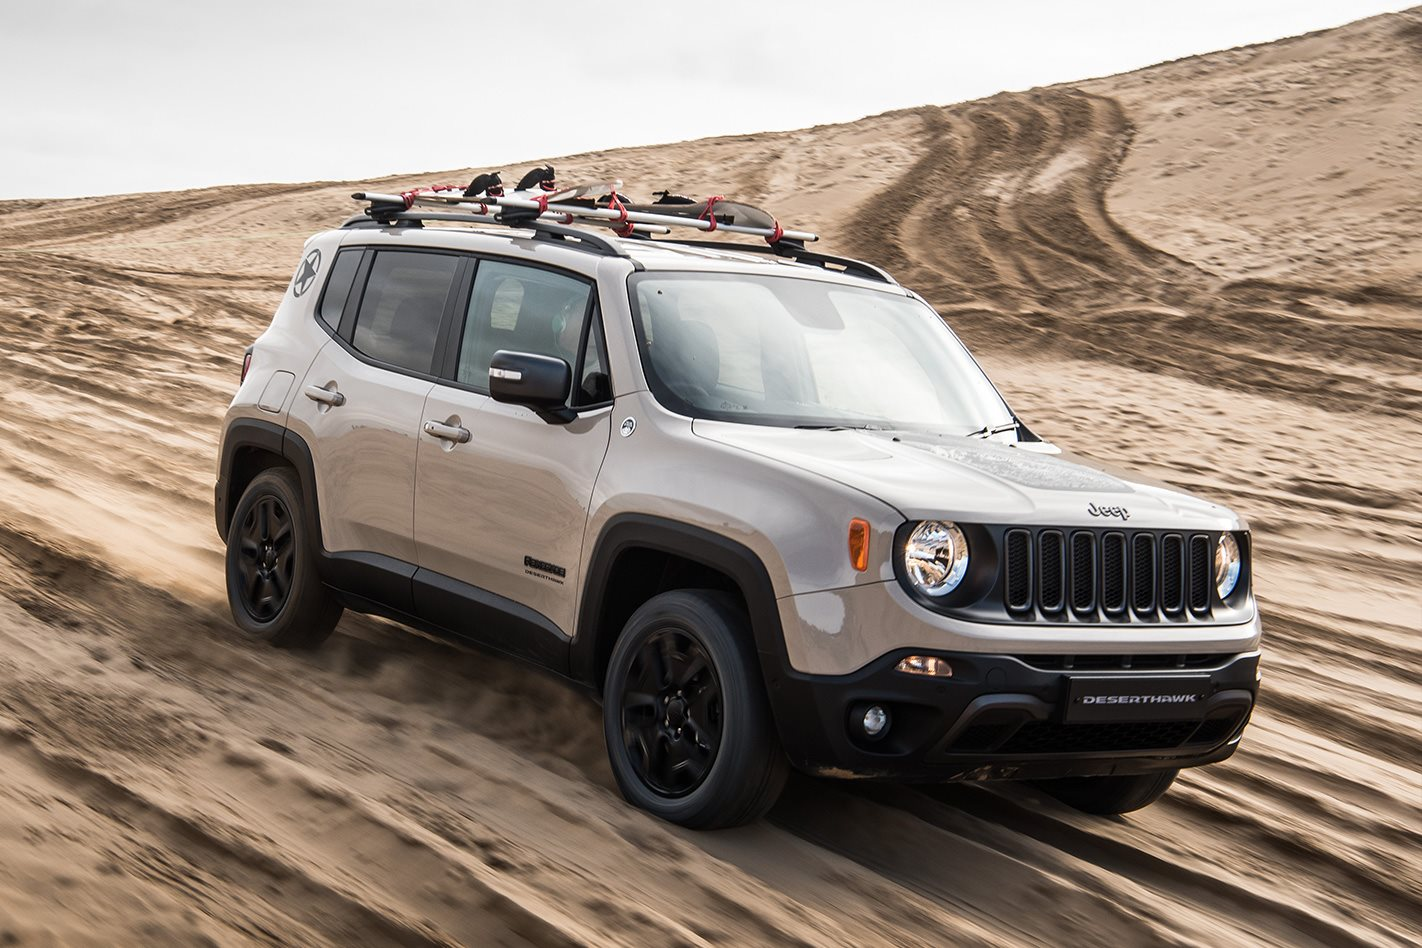 2017 jeep renegade desert hawk limited edition 4x4 australia. Black Bedroom Furniture Sets. Home Design Ideas